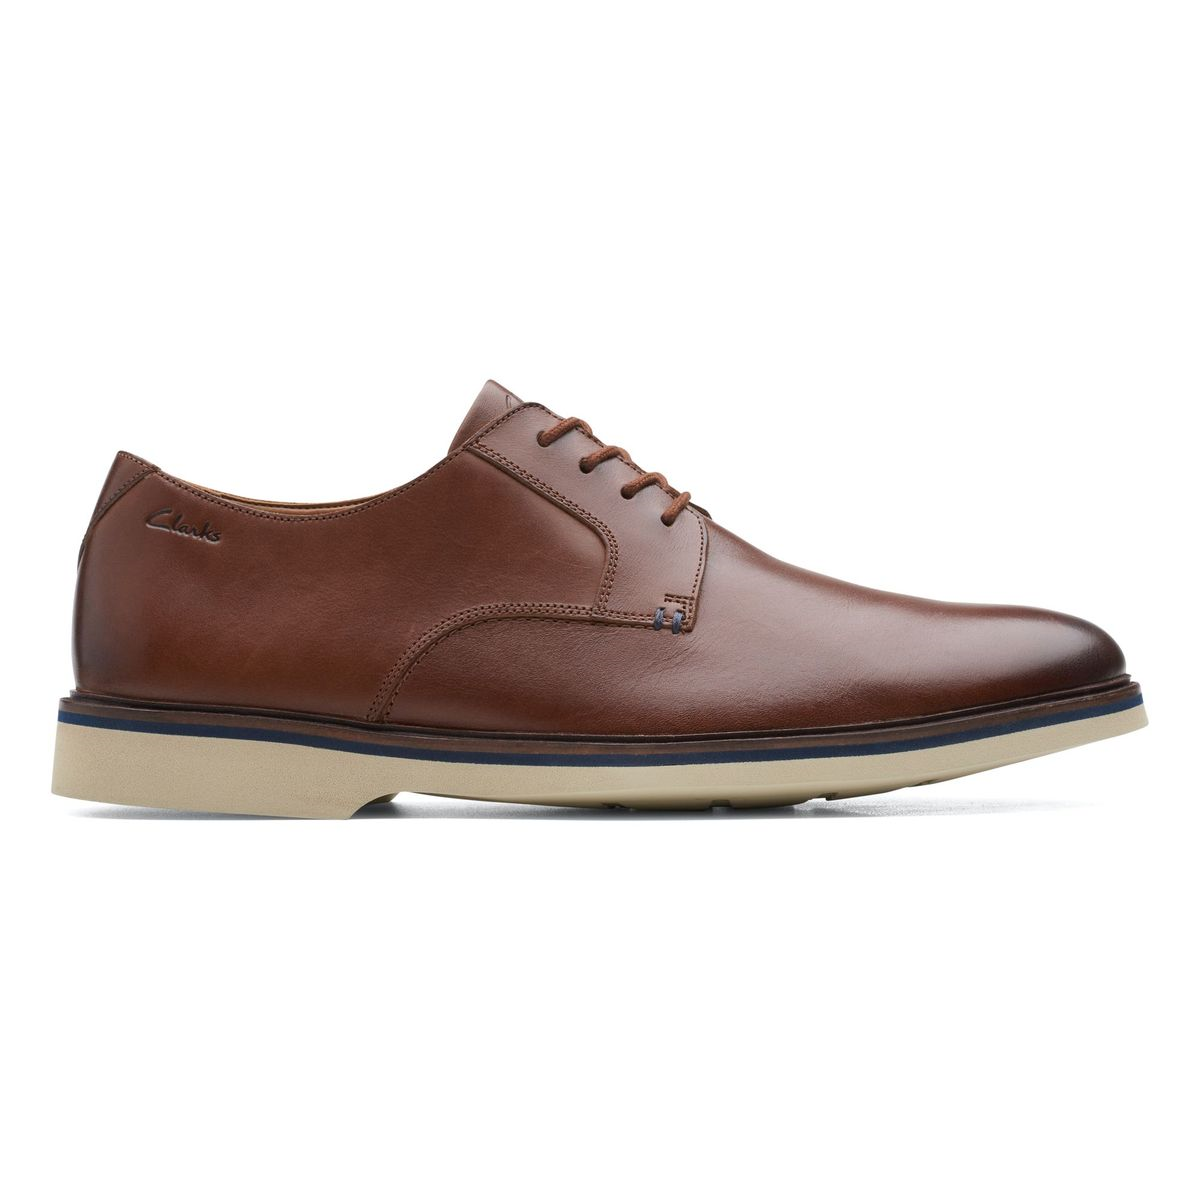 E-LAST SIMPLE MALWOOD PLAIN:MARRON/CUIR/TEXTILE/CAOUTCHOUC/Marron